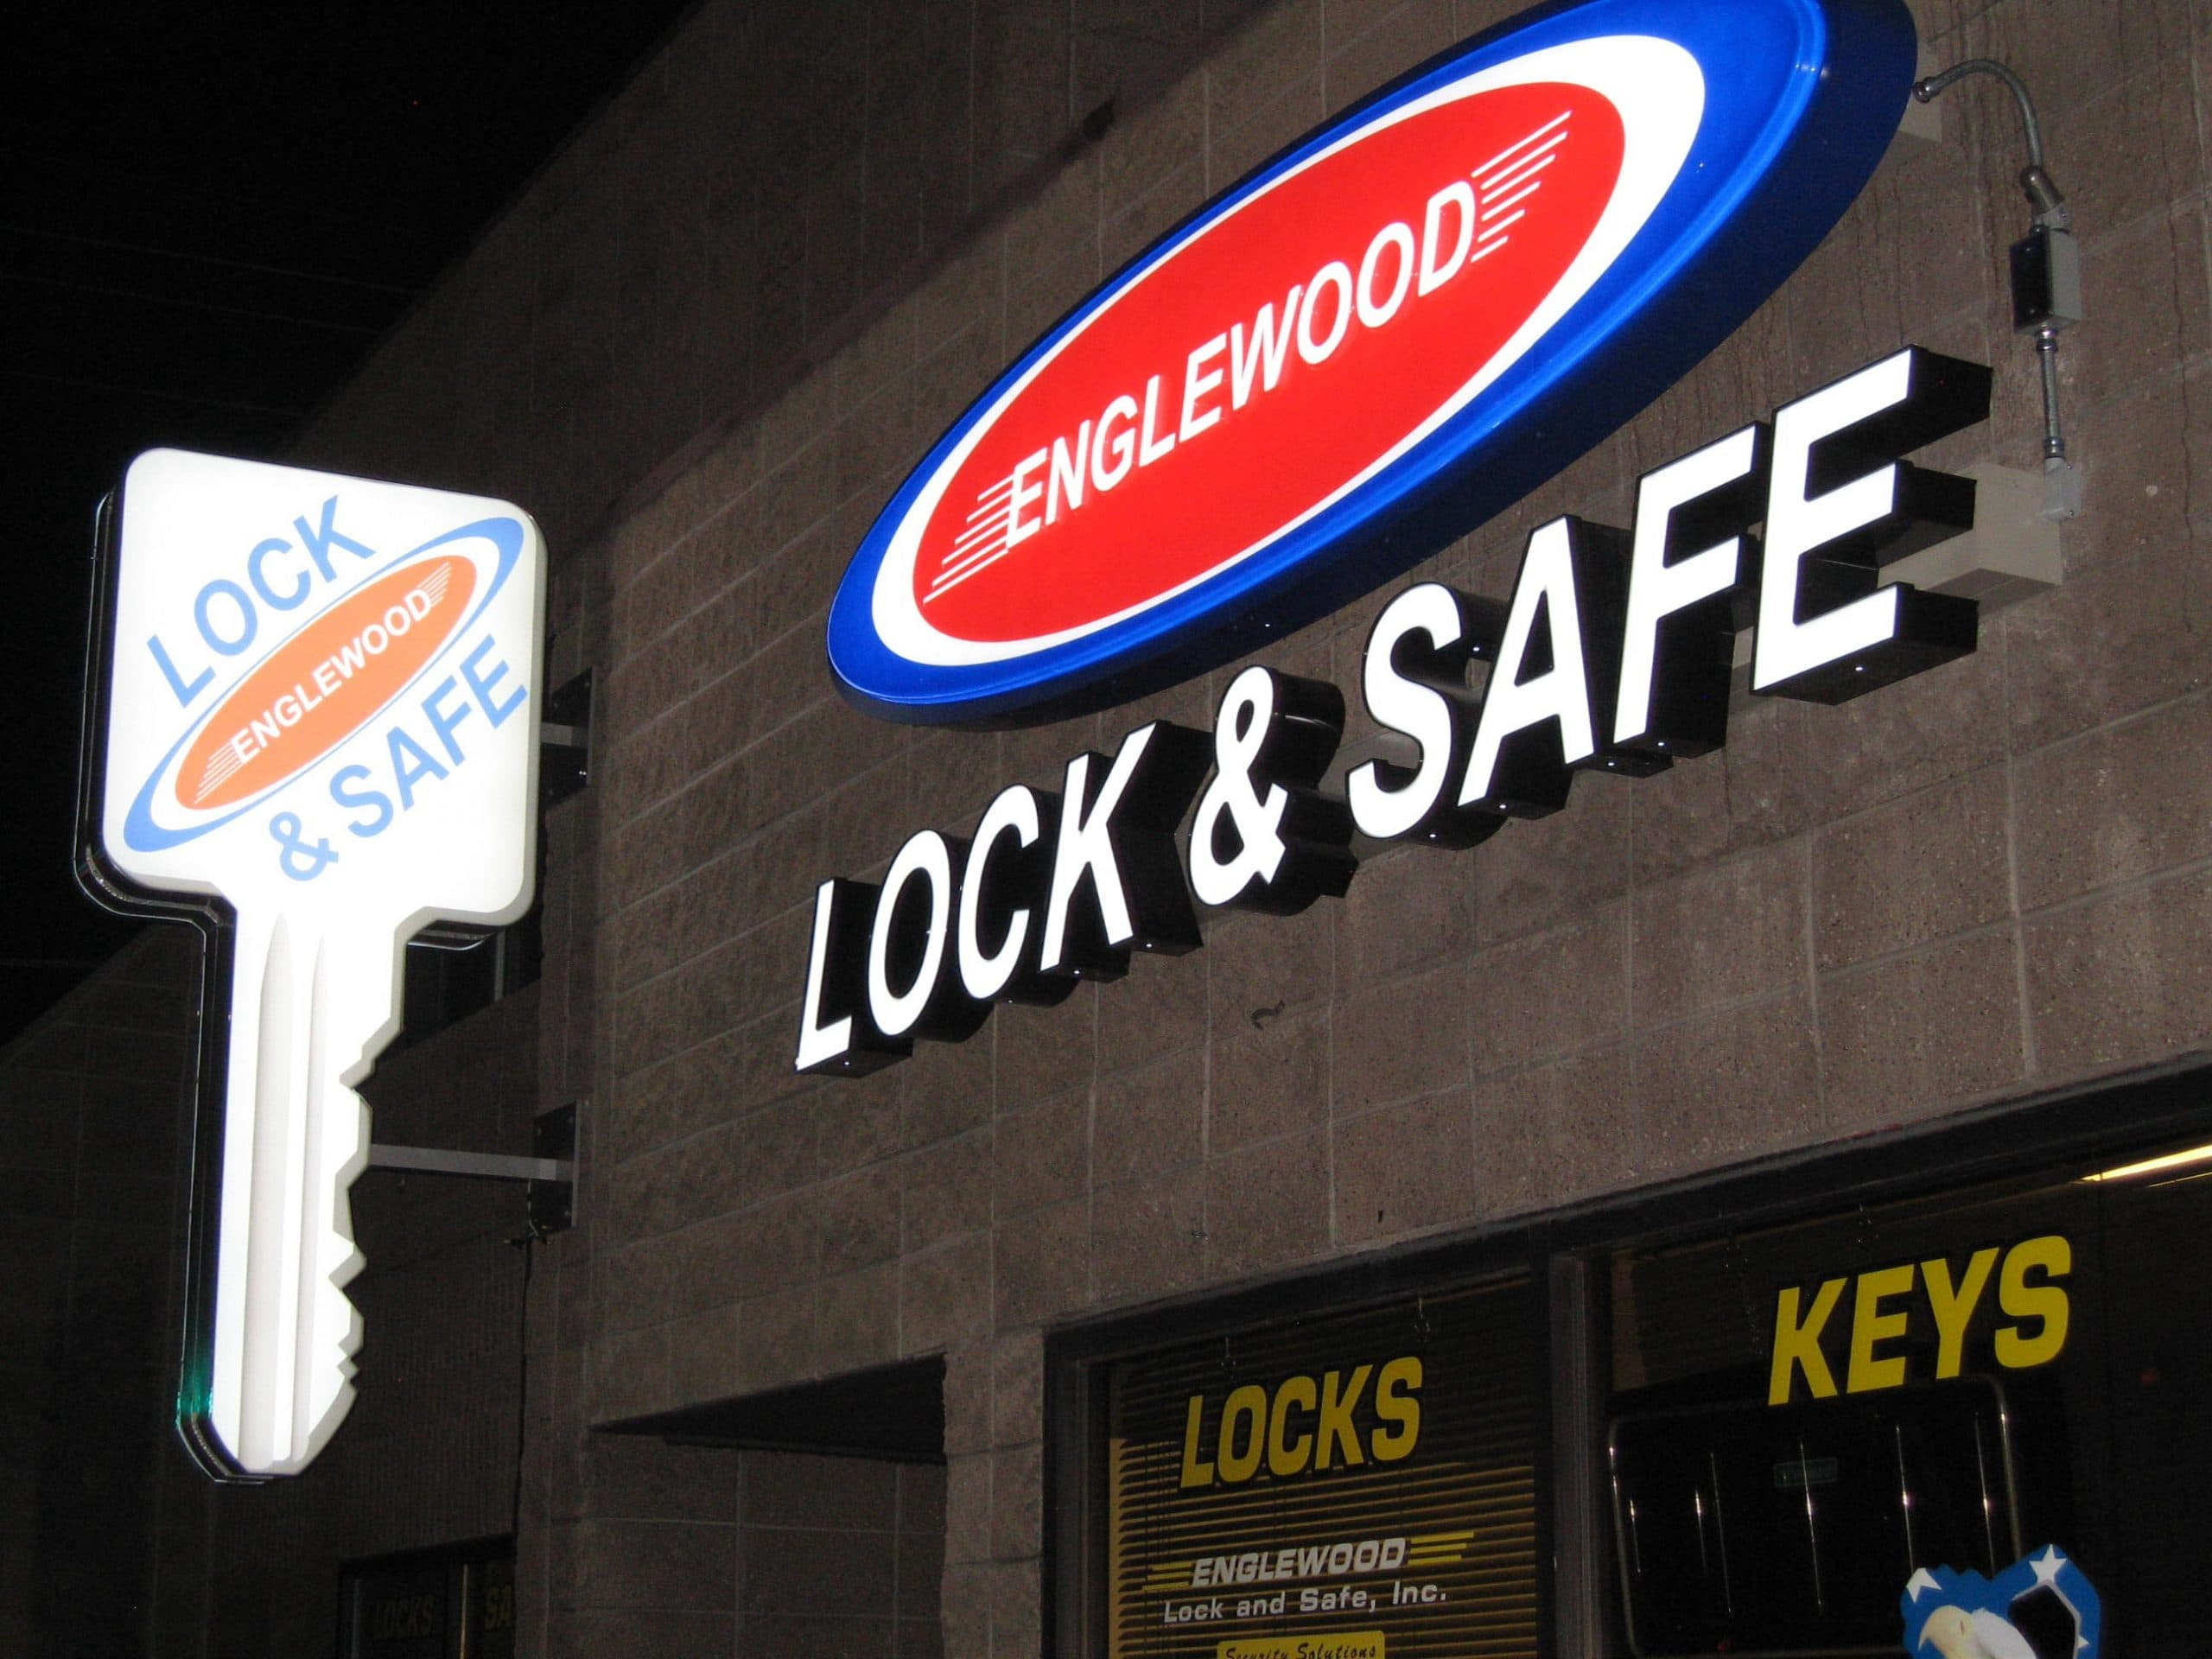 Englewood Lock & Safe